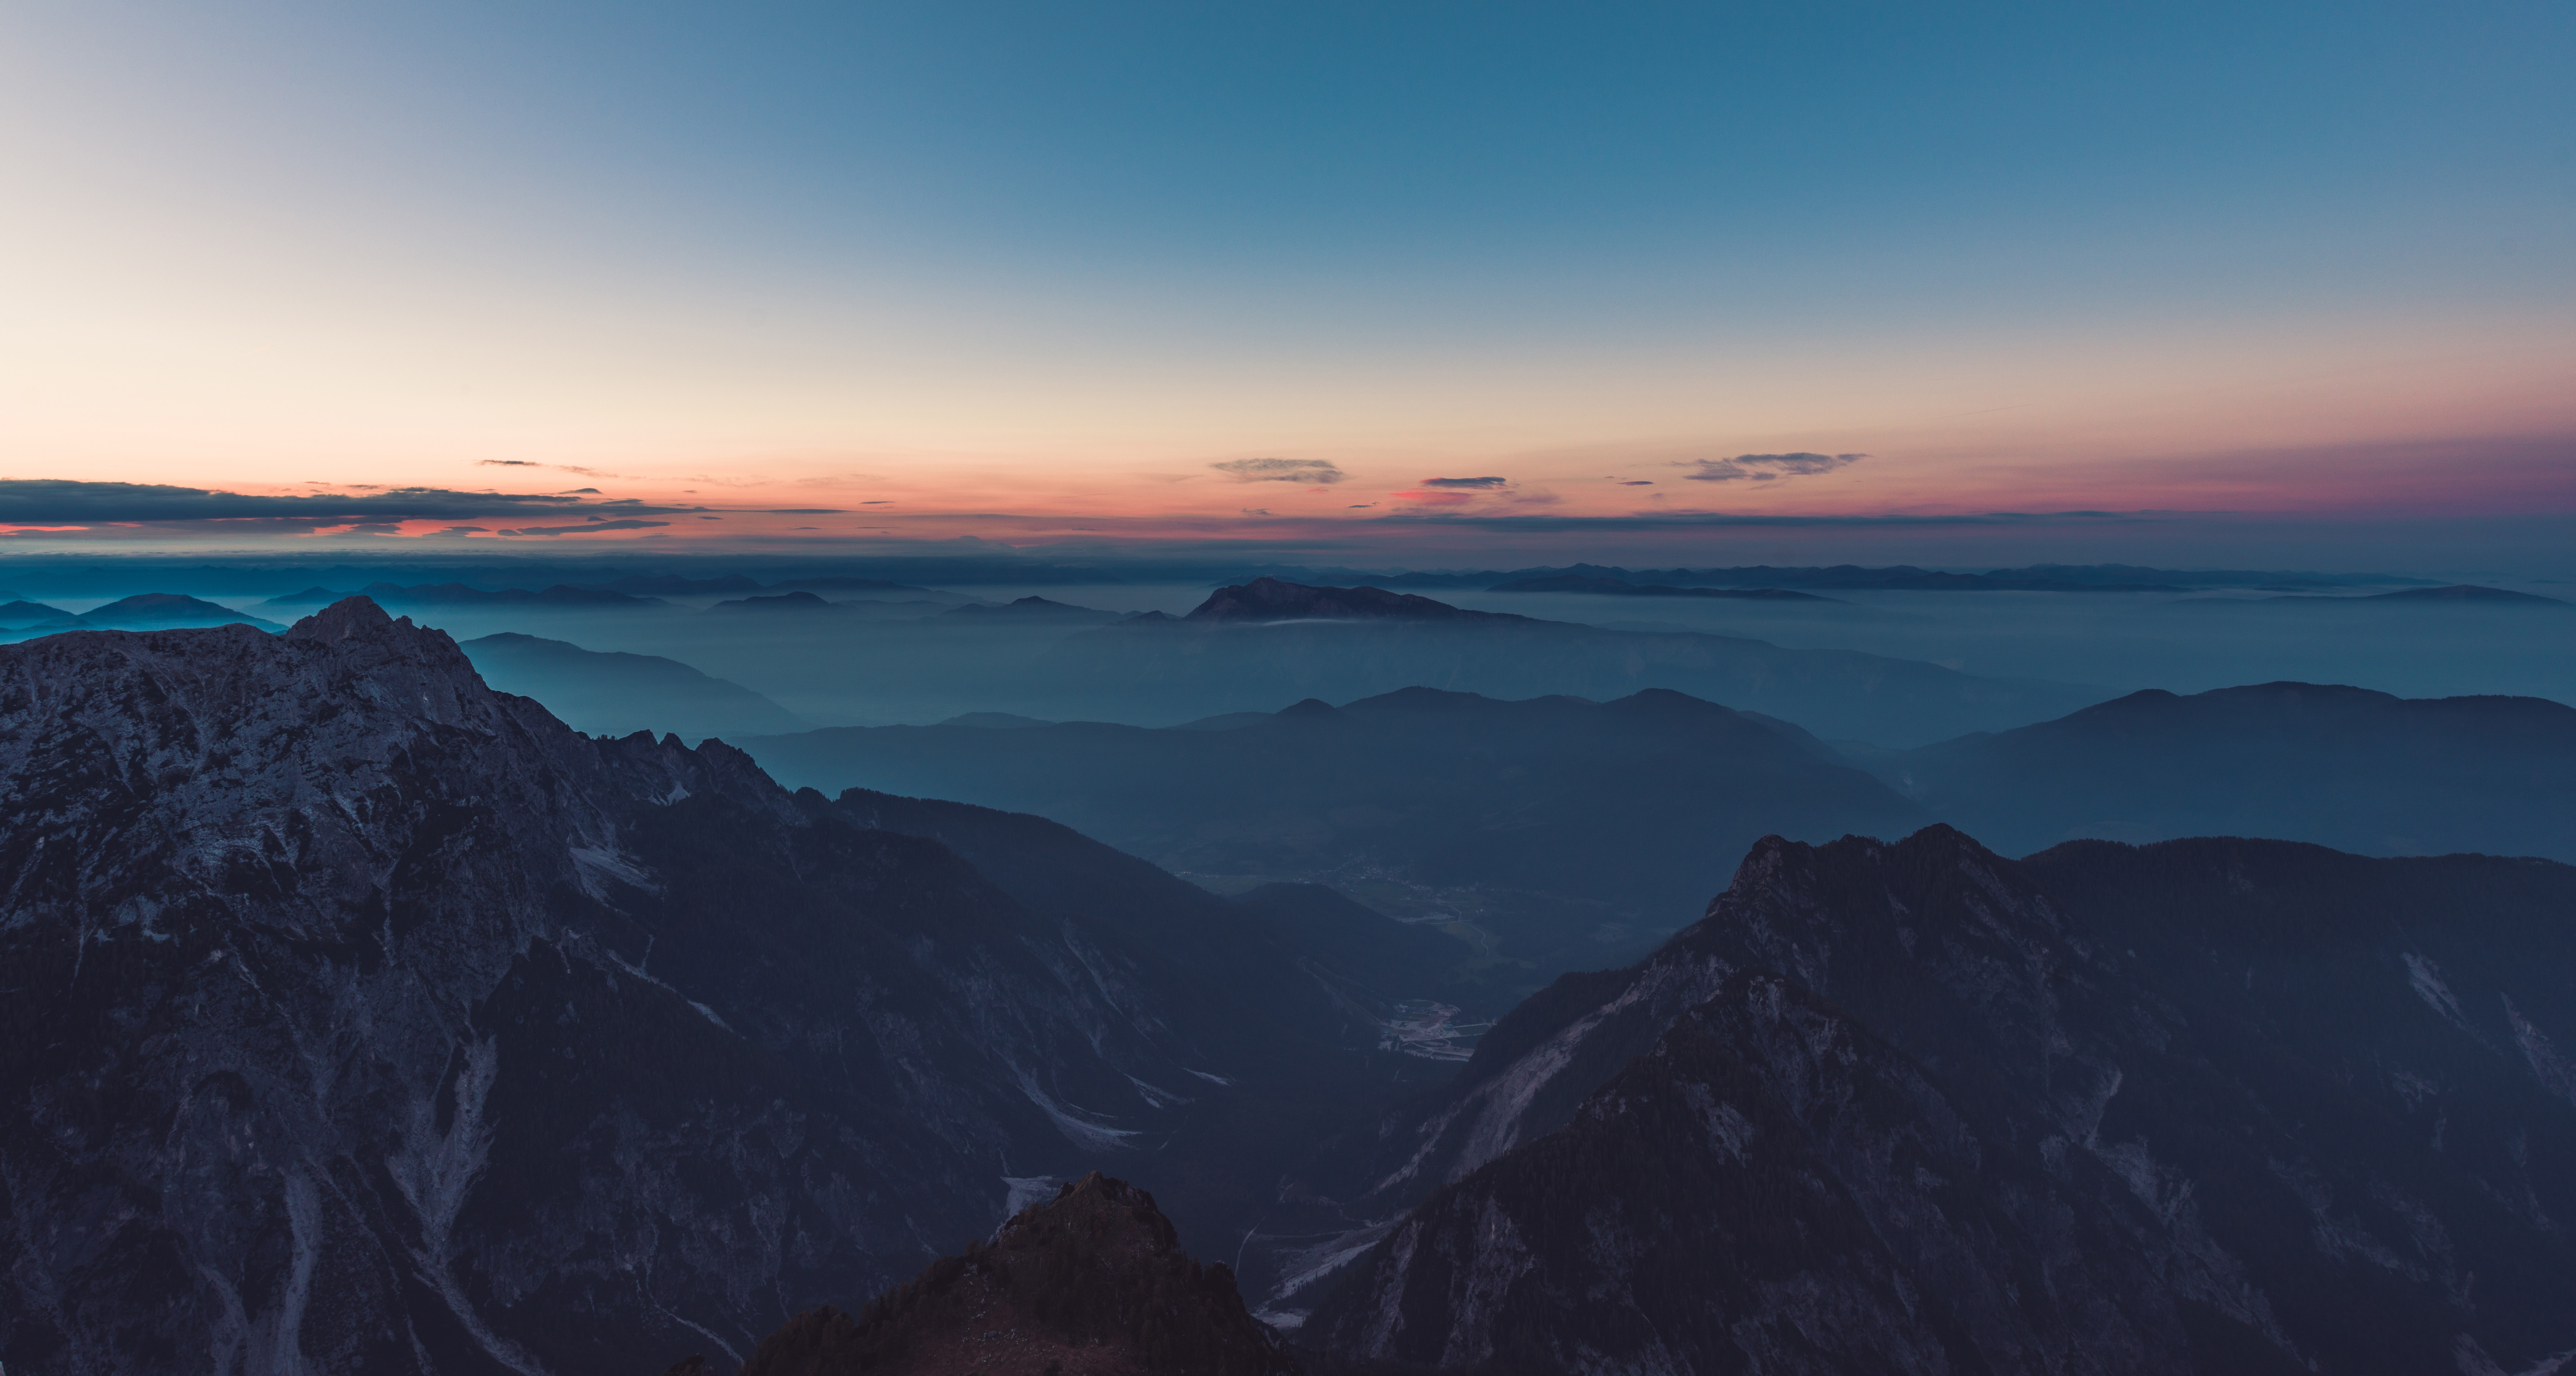 A hazy mountainous landscape with sharp ridges and deep valleys during sunset